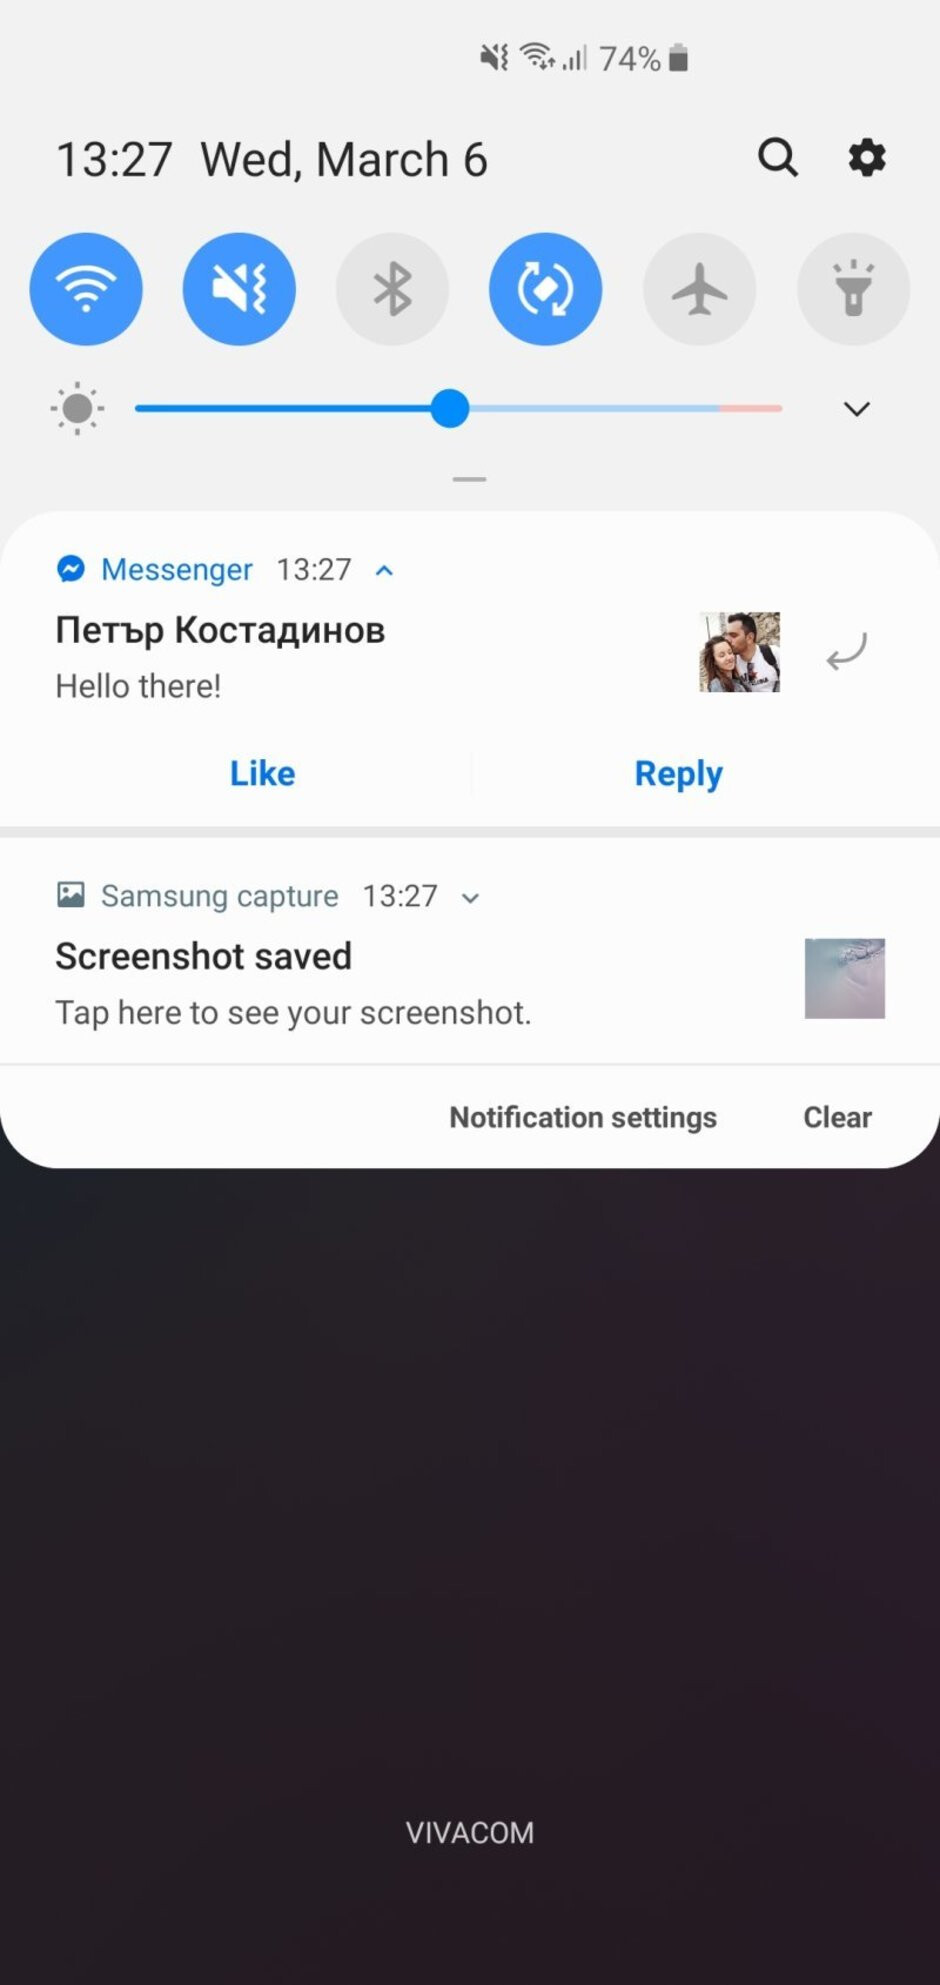 Interface of the Samsung Galaxy S10 - Samsung Galaxy S10 vs Google Pixel 3